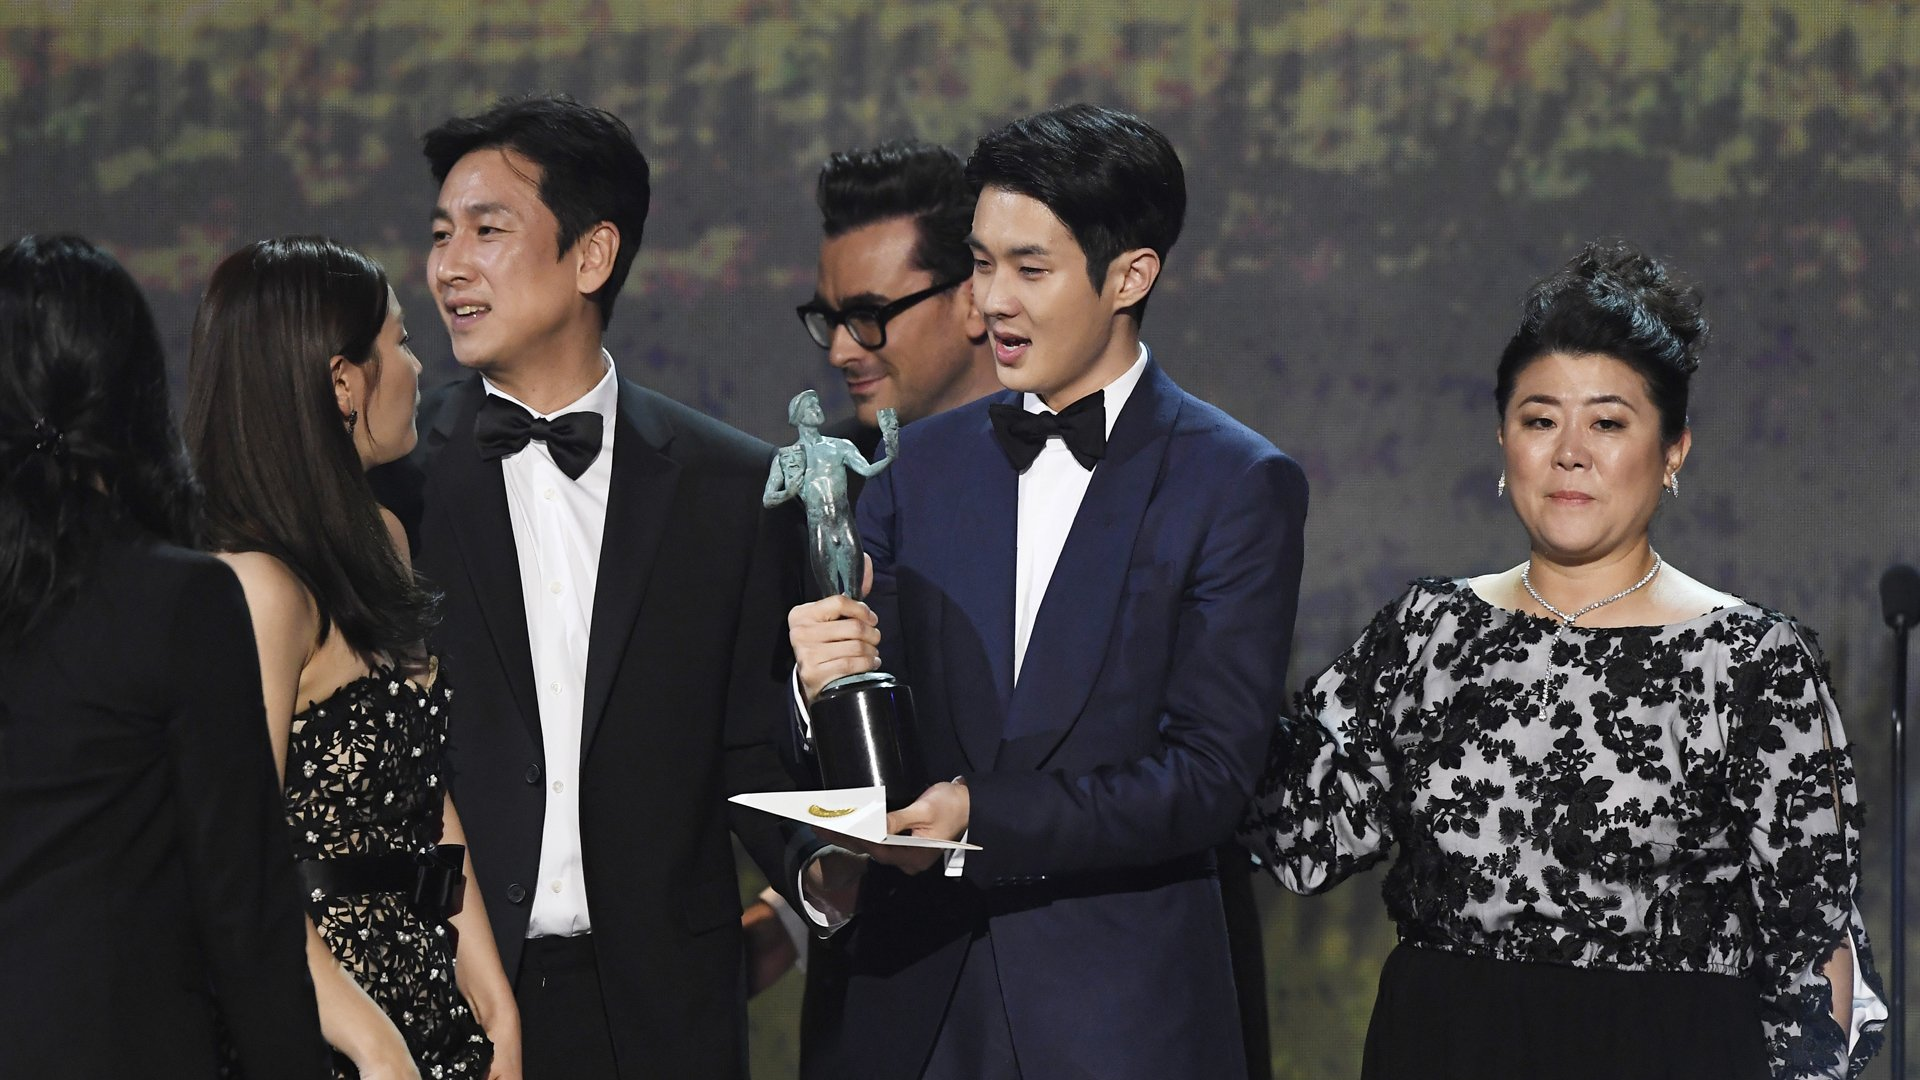 (L-R) Cho Yeo-jeong, Choi Woo-shik, Lee Sun Gyun, and Chang Hyae-jin accept Outstanding Performance by a Cast in a Motion Picture for 'Parasite' onstage during the 26th Annual Screen ActorsGuild Awards at The Shrine Auditorium on January 19, 2020 in Los Angeles, California. 721359 (Credit: Kevork Djansezian/Getty Images for Turner)